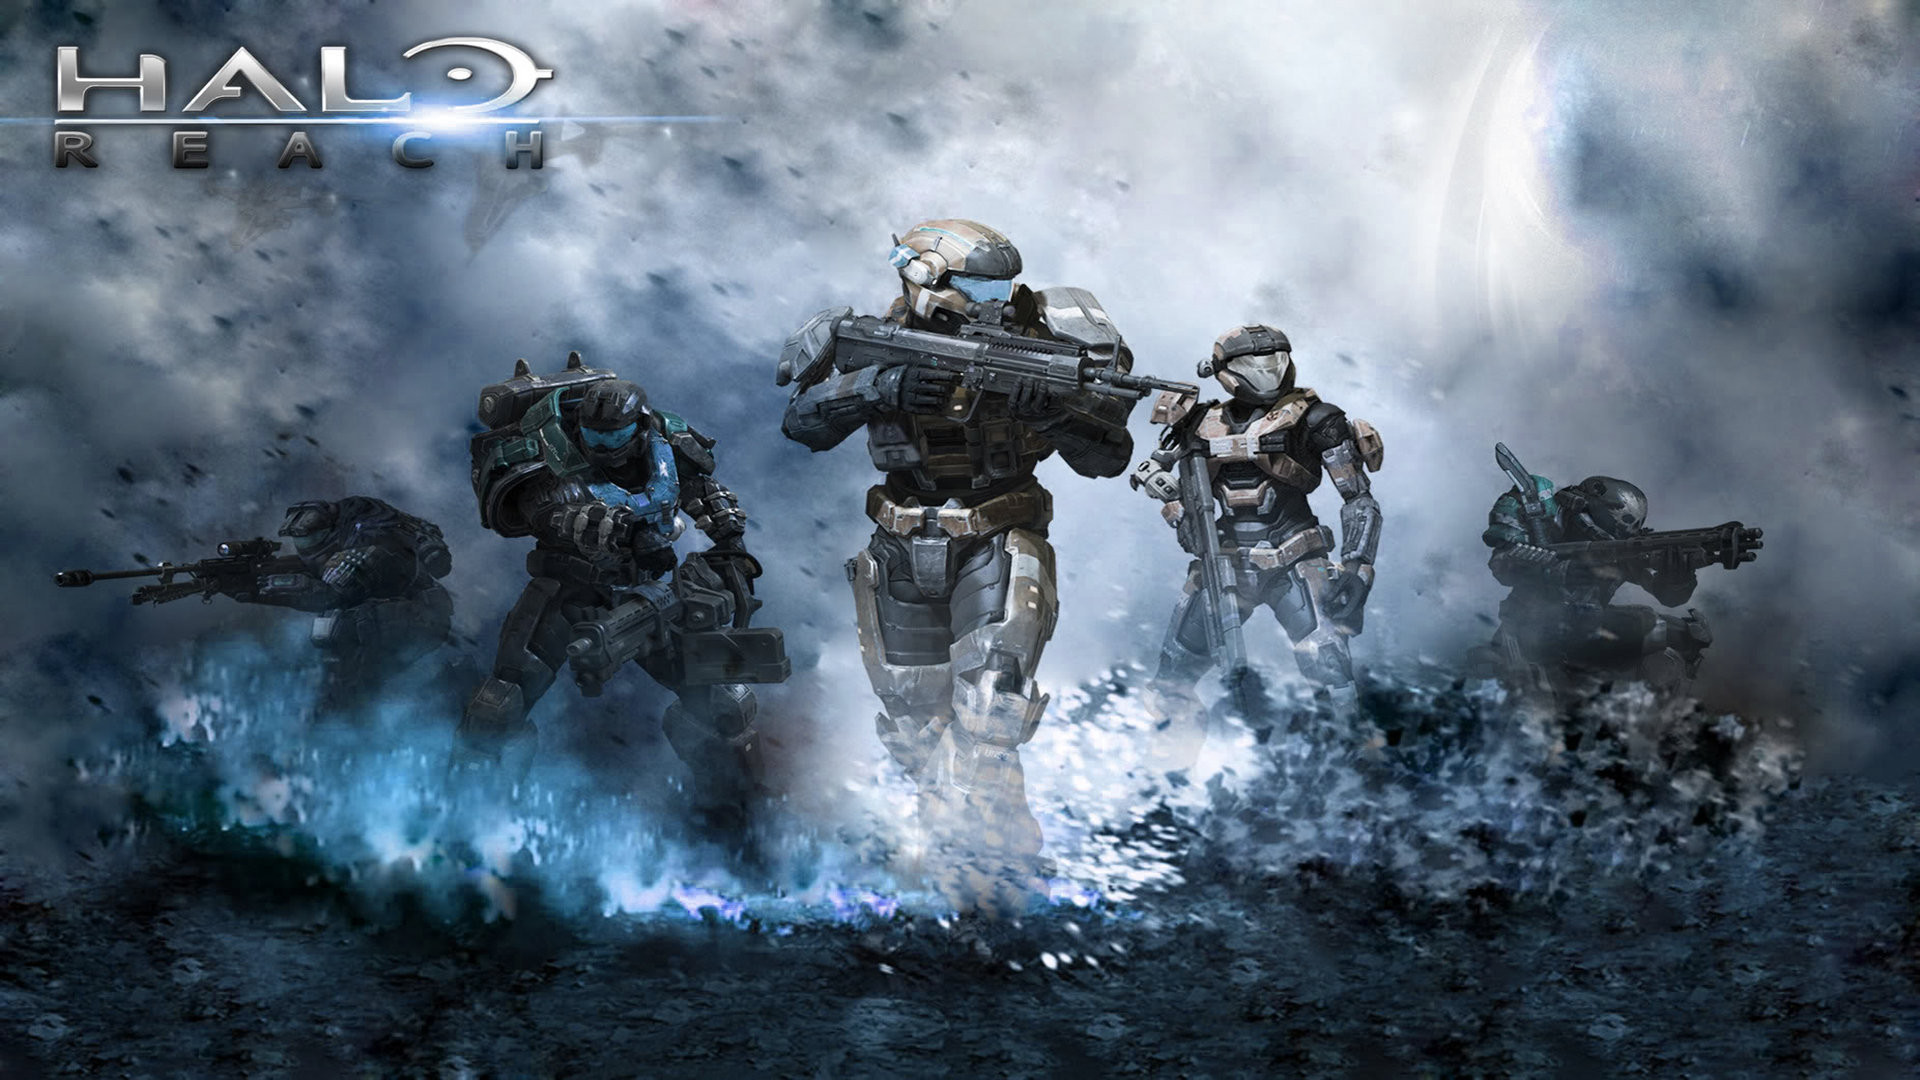 Halo 5 download wallpapers